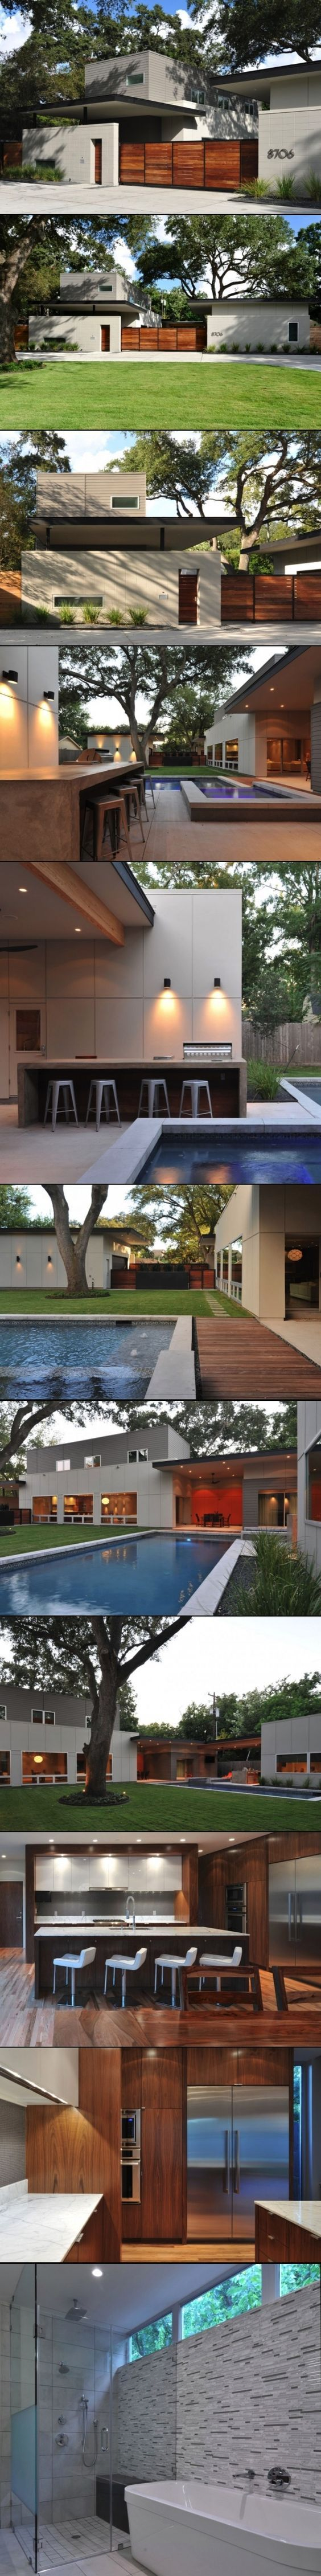 best architecture images on pinterest home ideas future